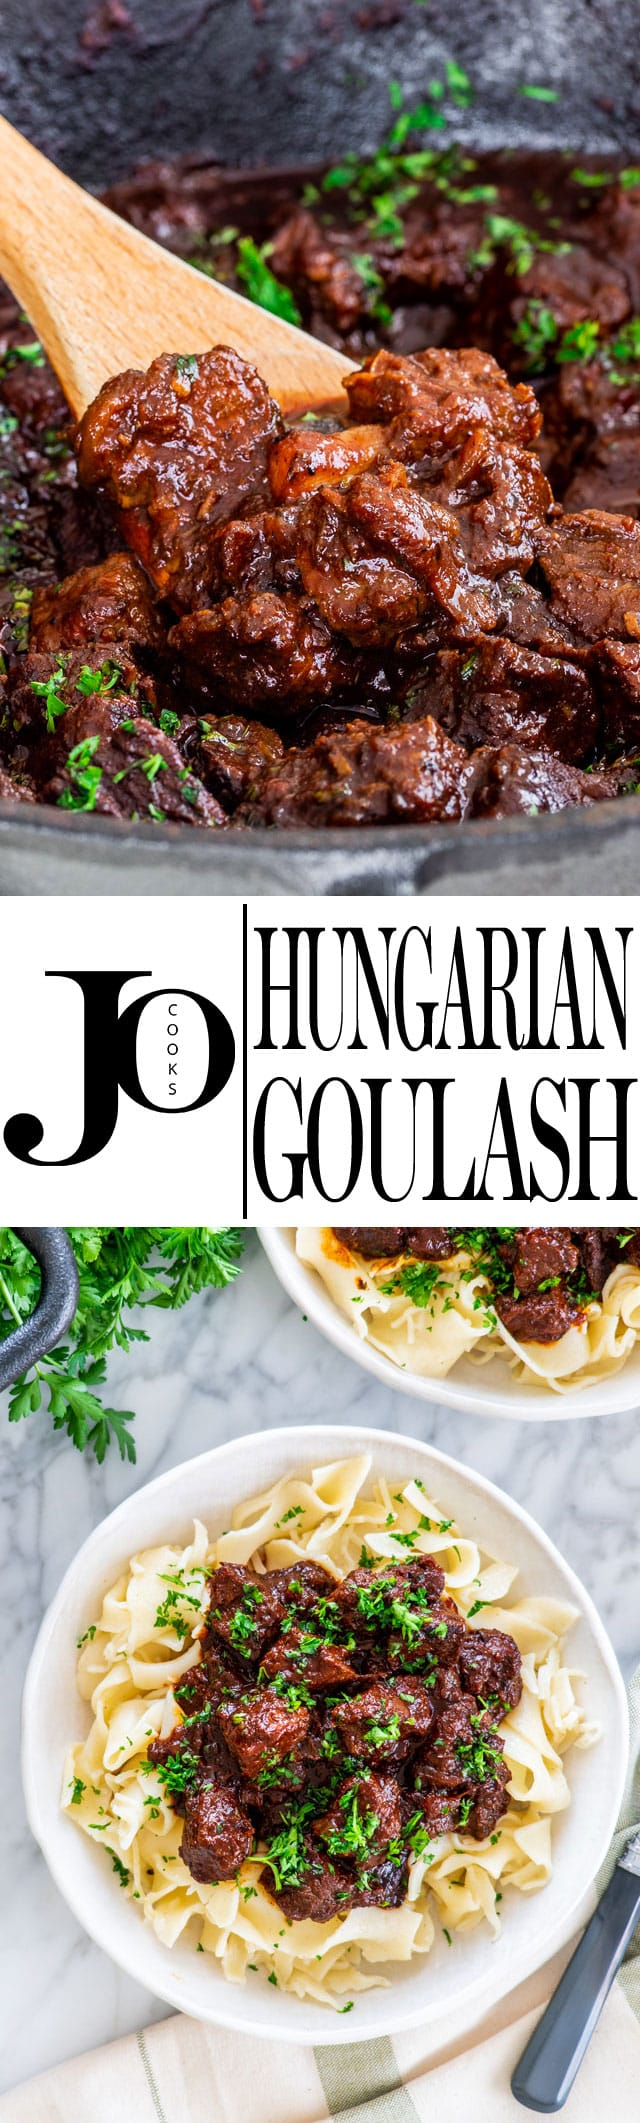 A classic Hungarian Goulash with melt-in-your mouth, tender beef, slowly cooked in an incredibly rich broth. Tasty, comforting and perfect for the whole family! #goulash